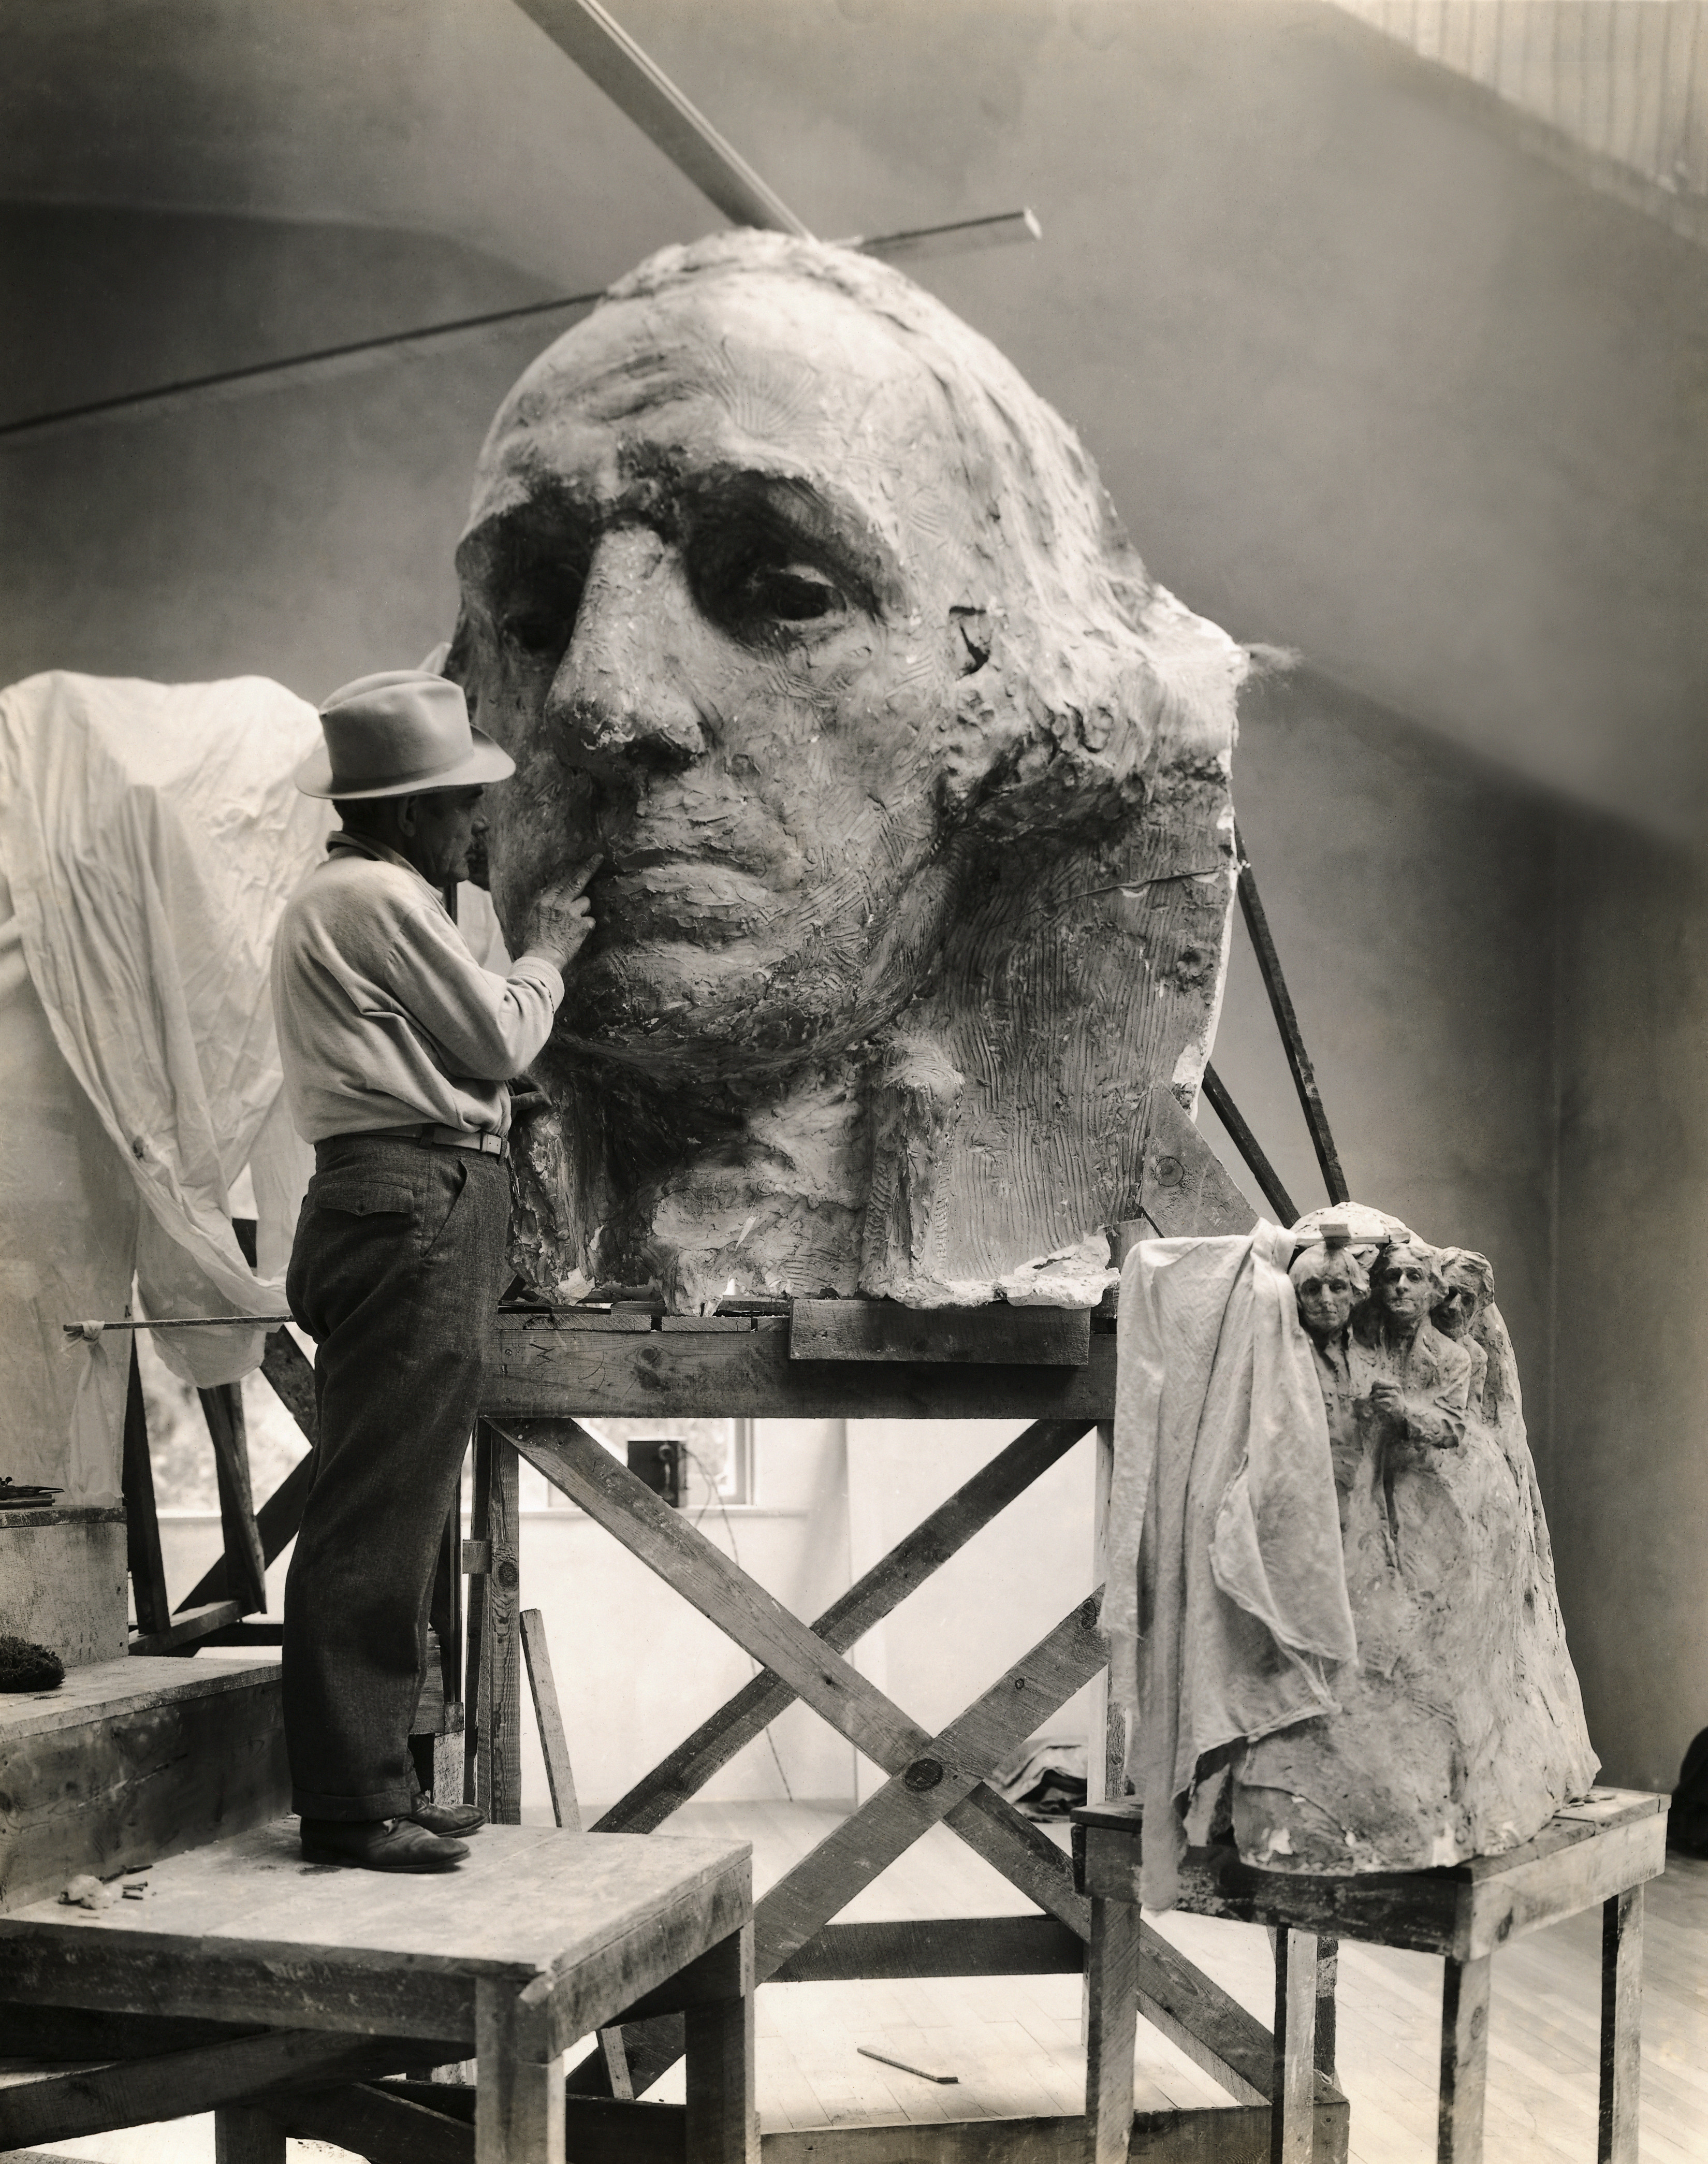 Gutzon Borglum seen in his studio at Rushmore is working on the model of the head of Washington, Black Hills area of Keystone, S.D., circa 1930s.